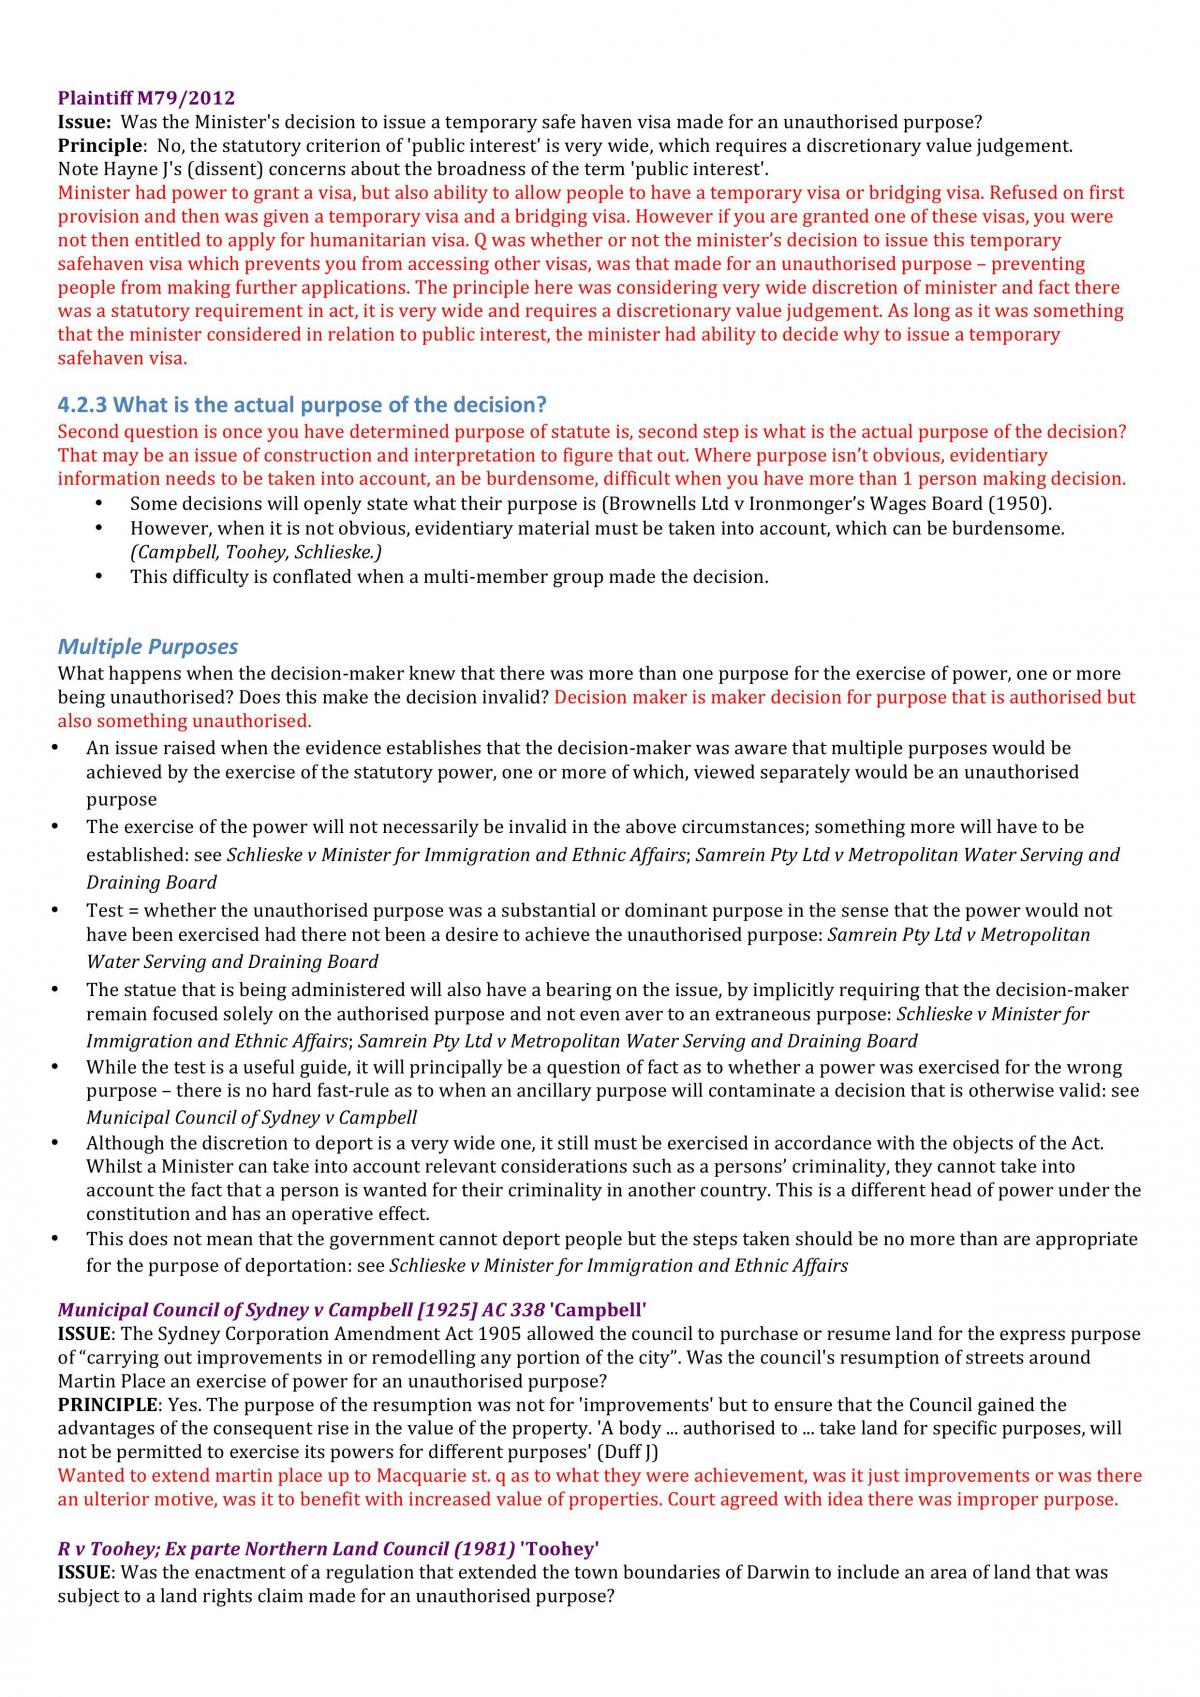 Administrative Law Exam Notes - Page 50